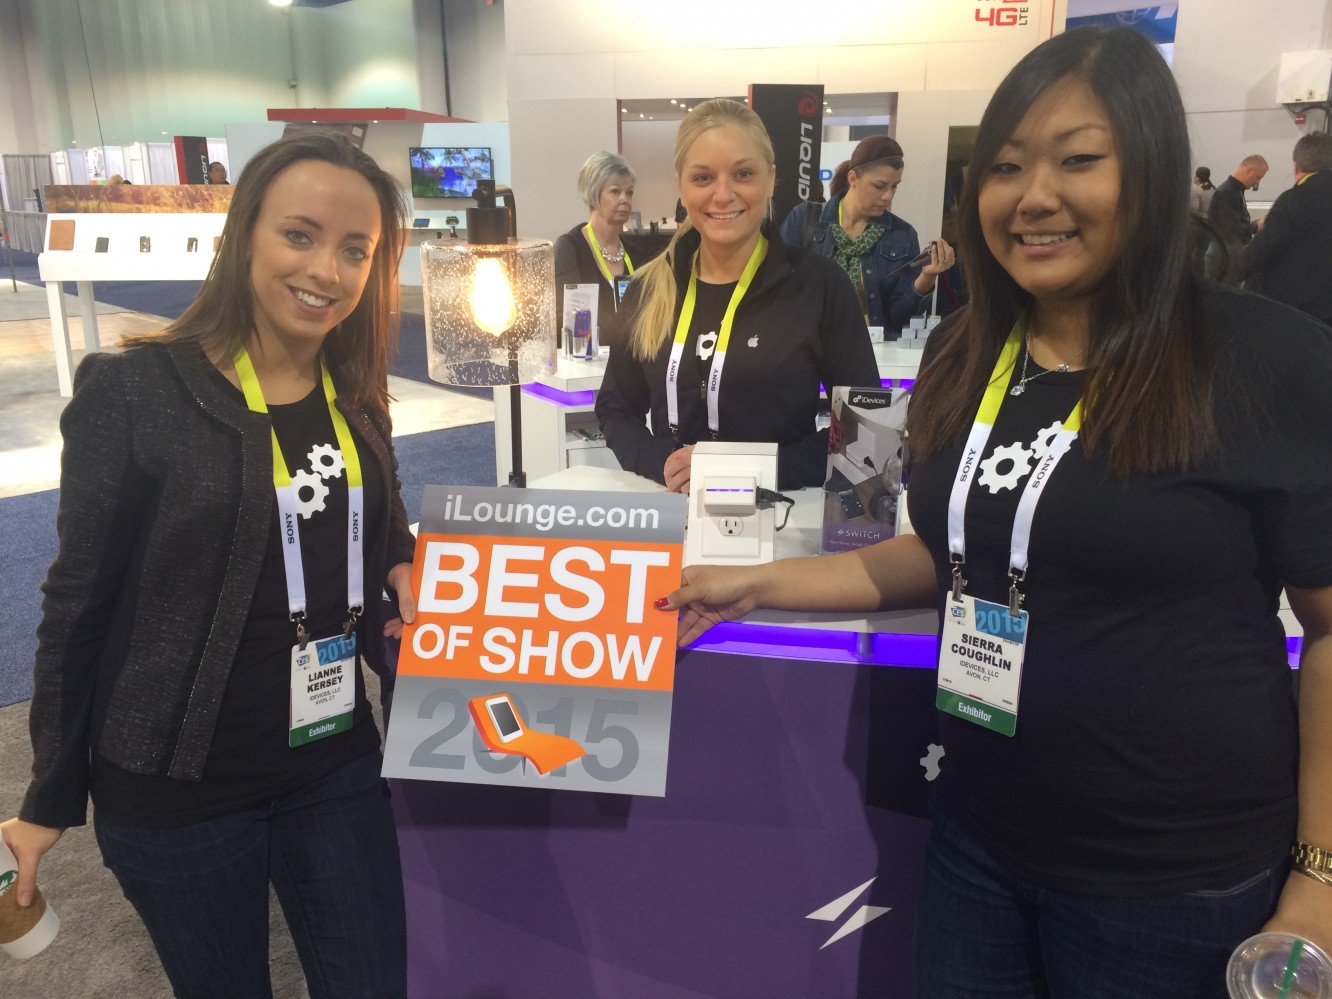 iLounge announces its CES 2015 Best of Show Awards 2